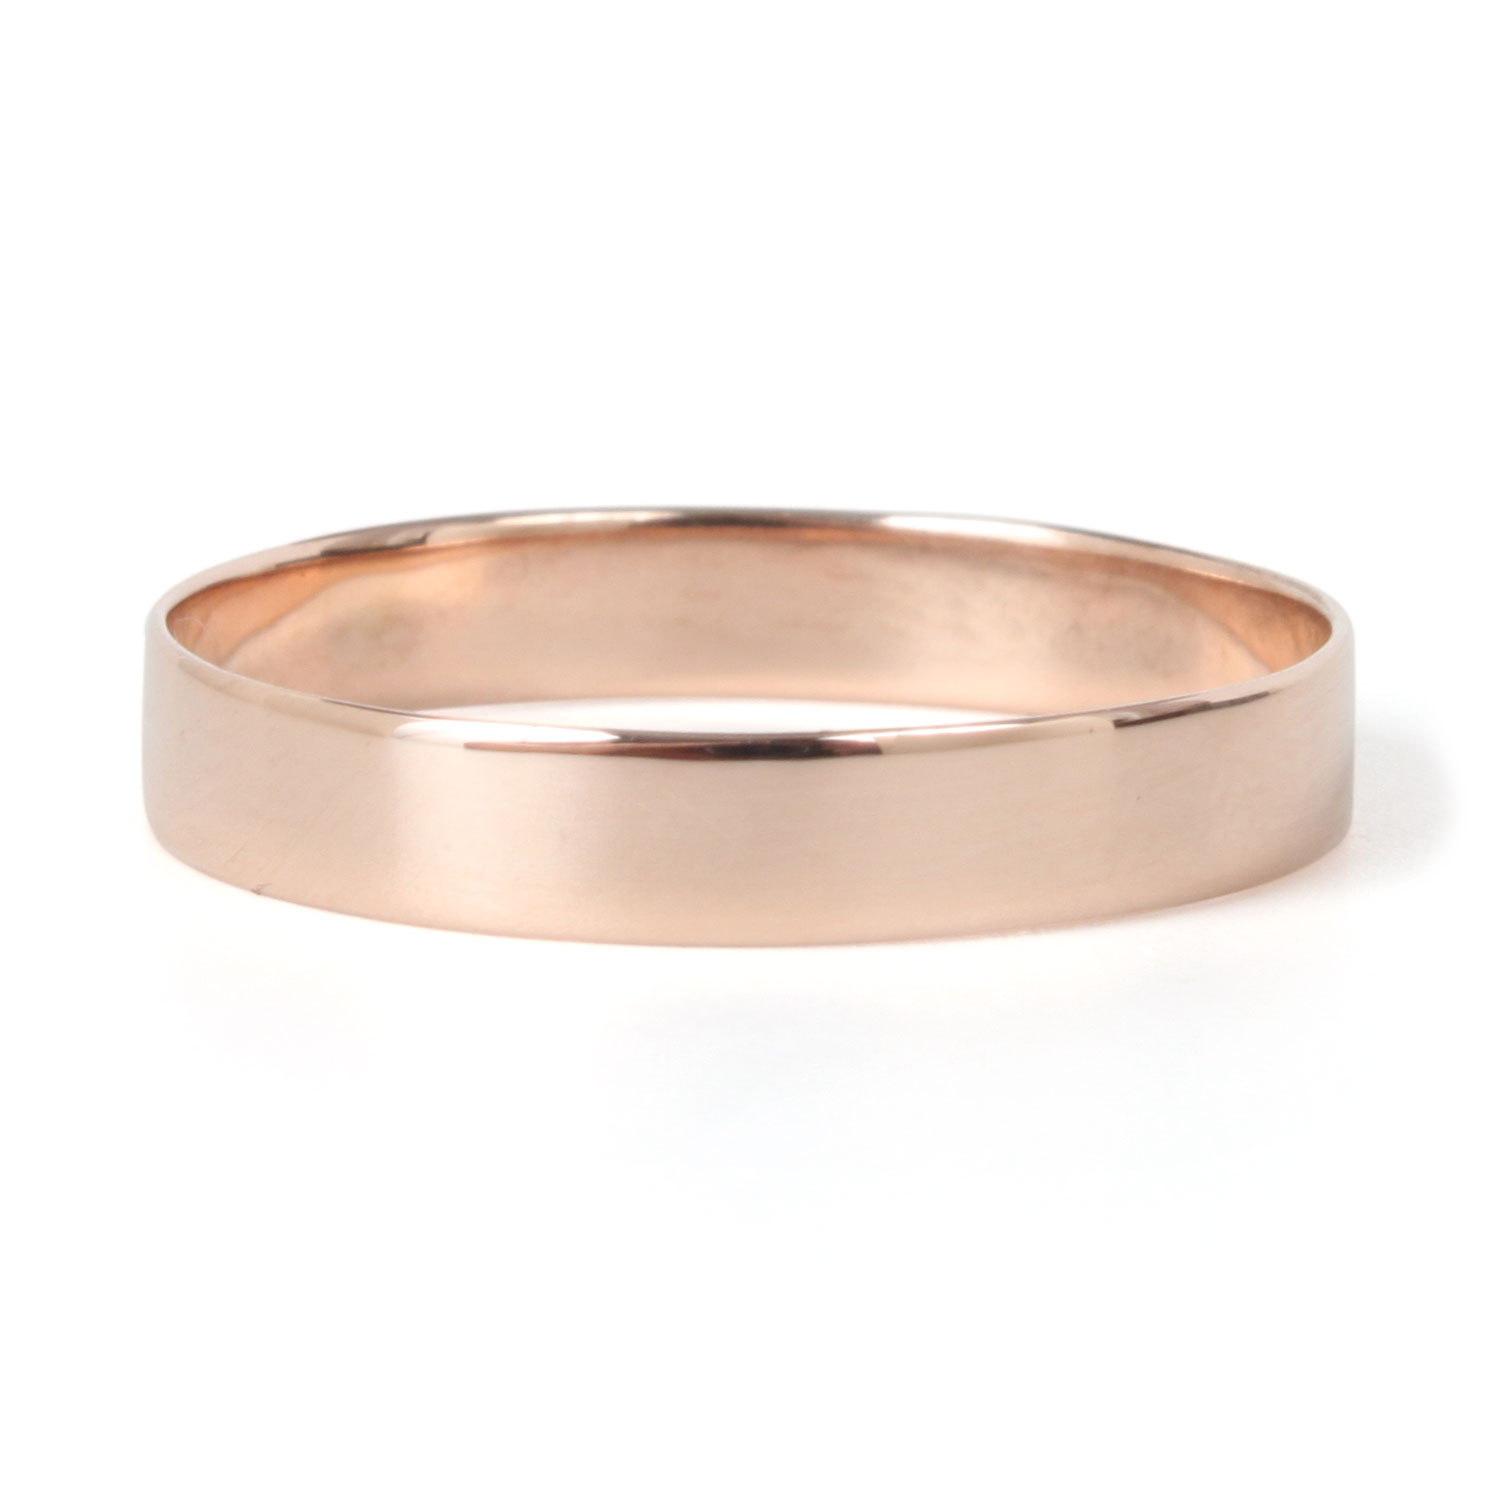 rough matte band textured previous hewn rings hammered white gold product p wedding next domed